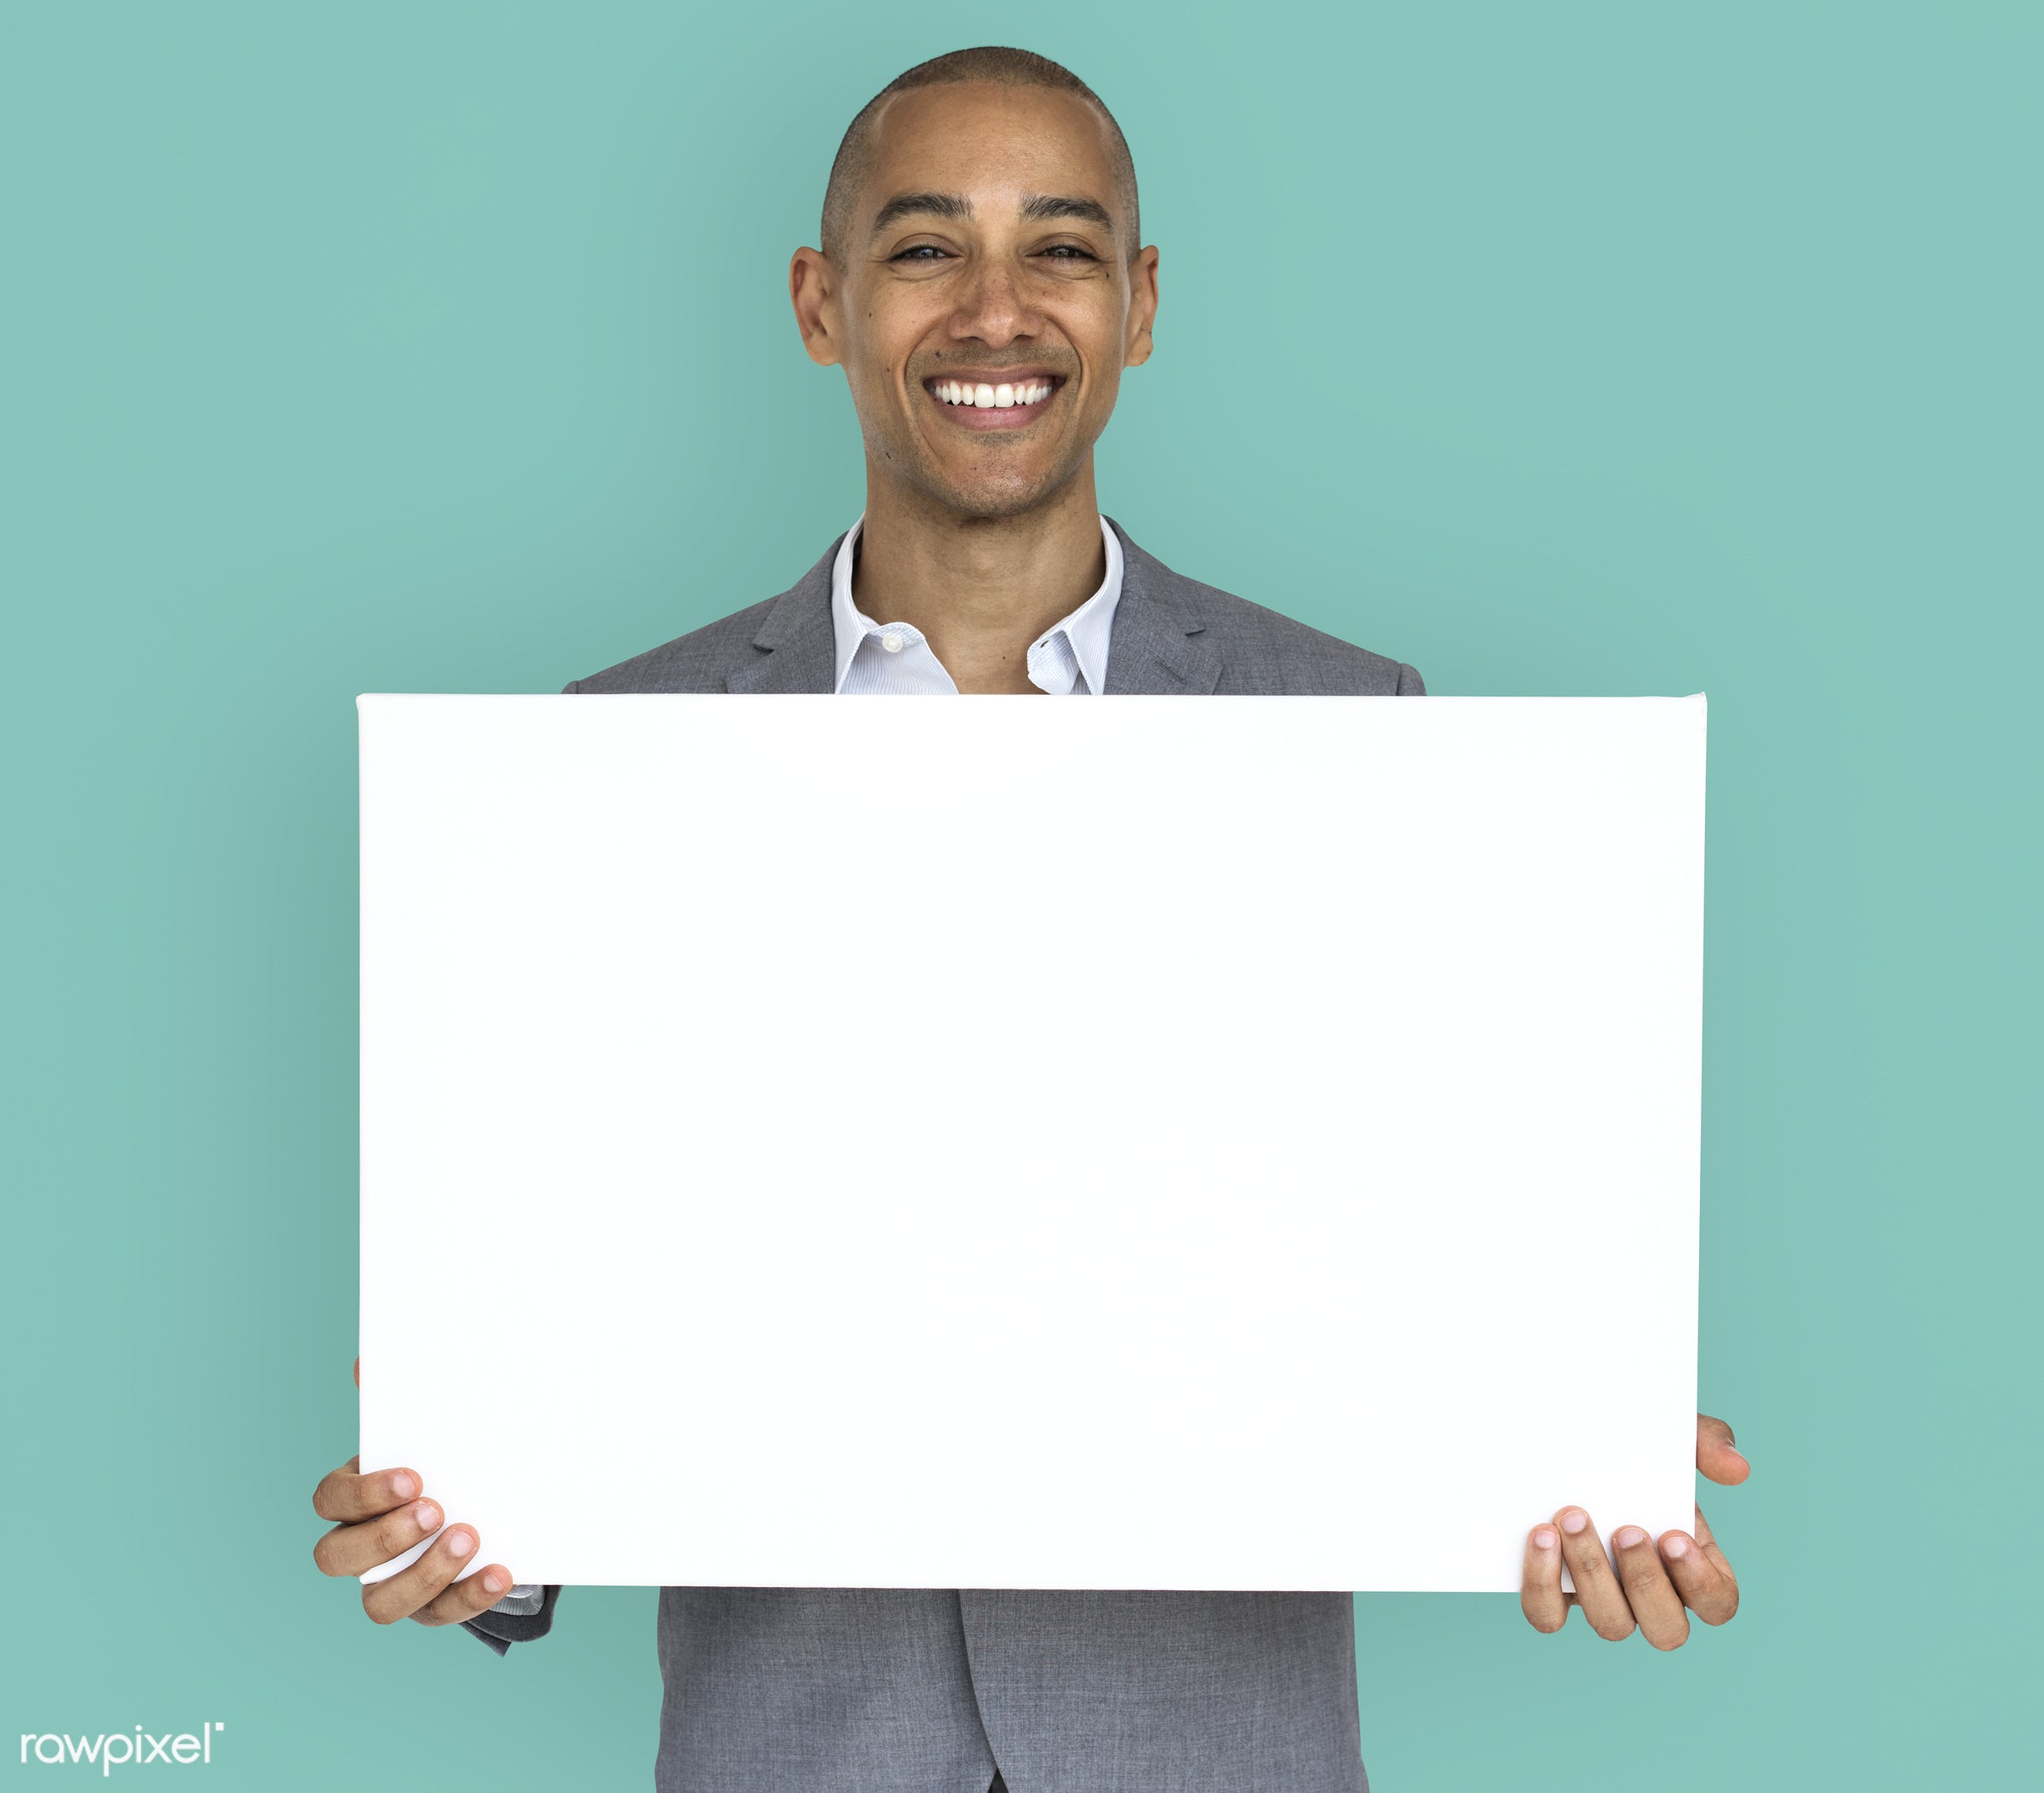 expression, studio, copy space, person, holding, joy, people, business, placard, businessman, happy, mixed race, smile,...